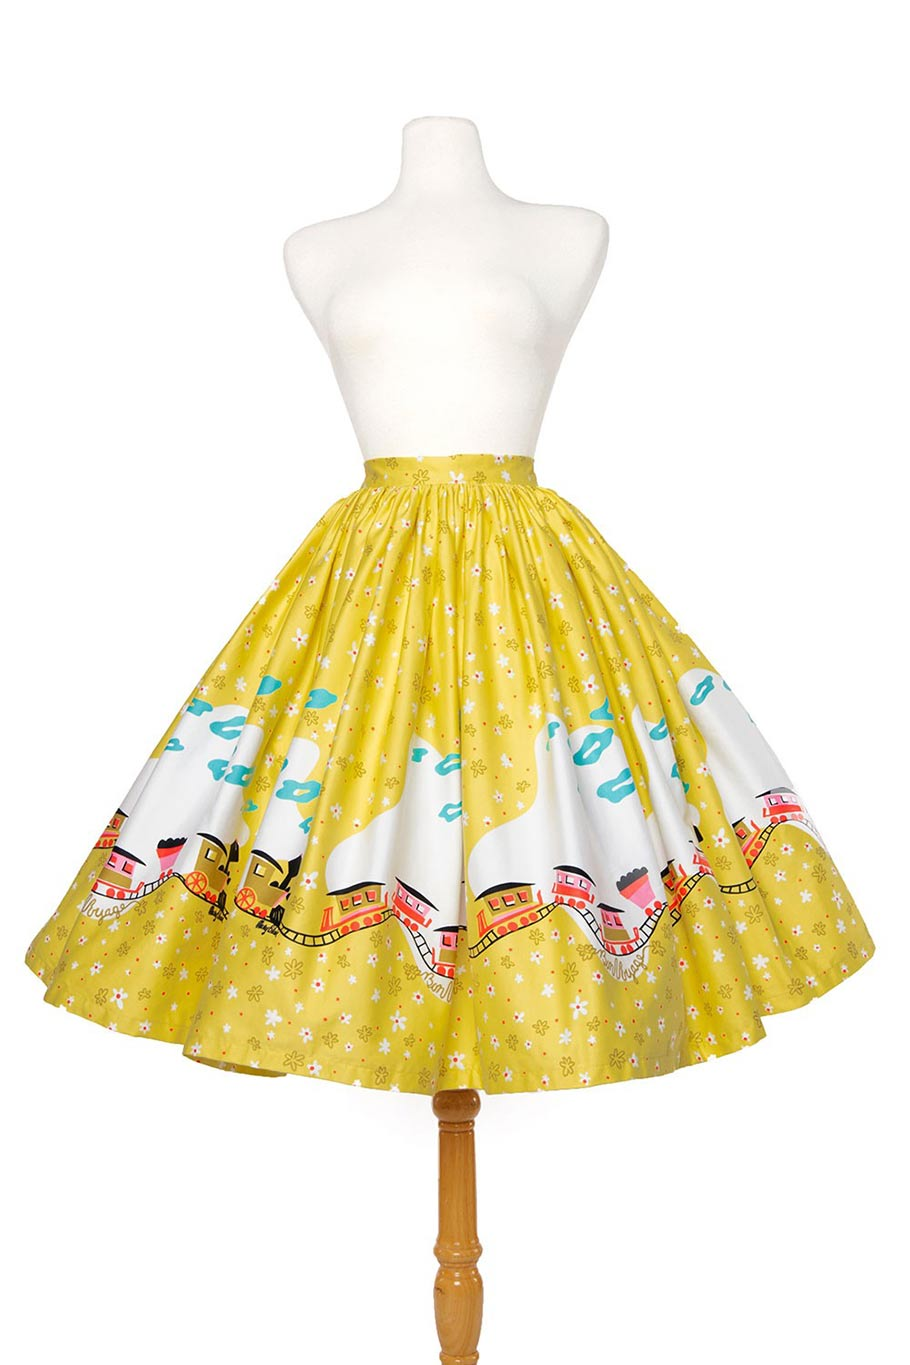 Pinup Girl Clothing Creates Magic of Mary Blair Collection